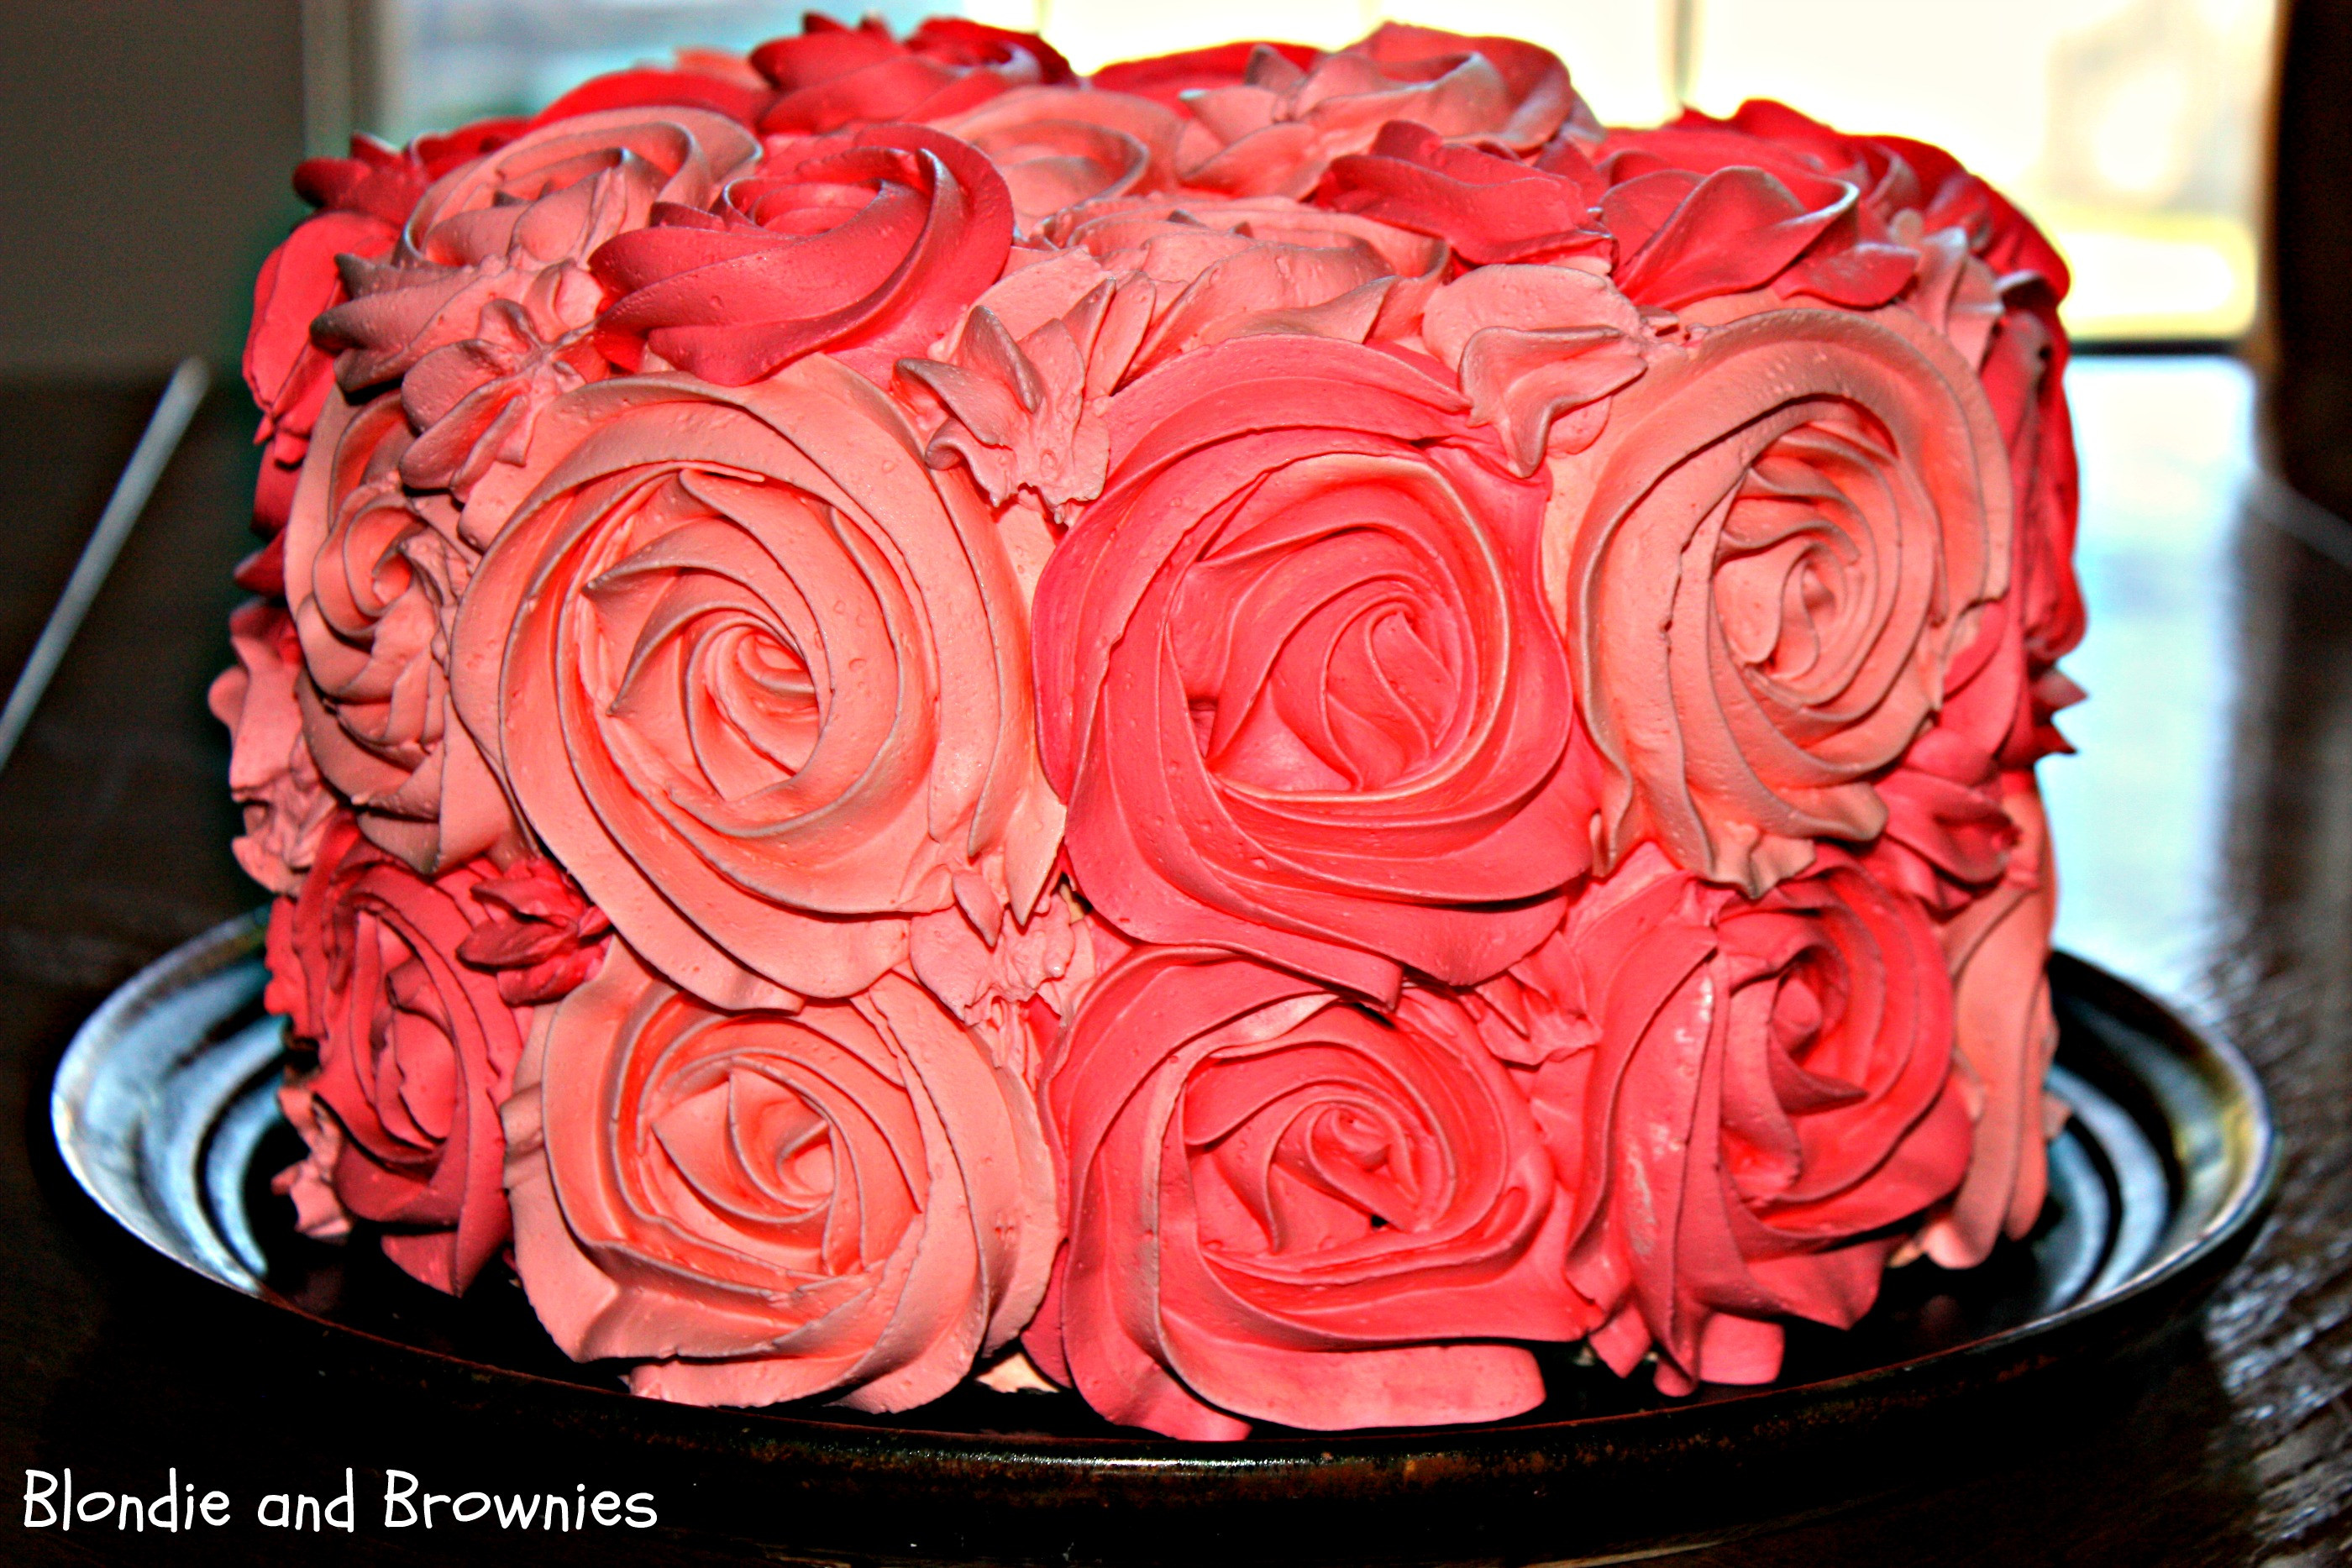 Best ideas about Rose Birthday Cake . Save or Pin Rose Cake – Blon and Brownies Now.